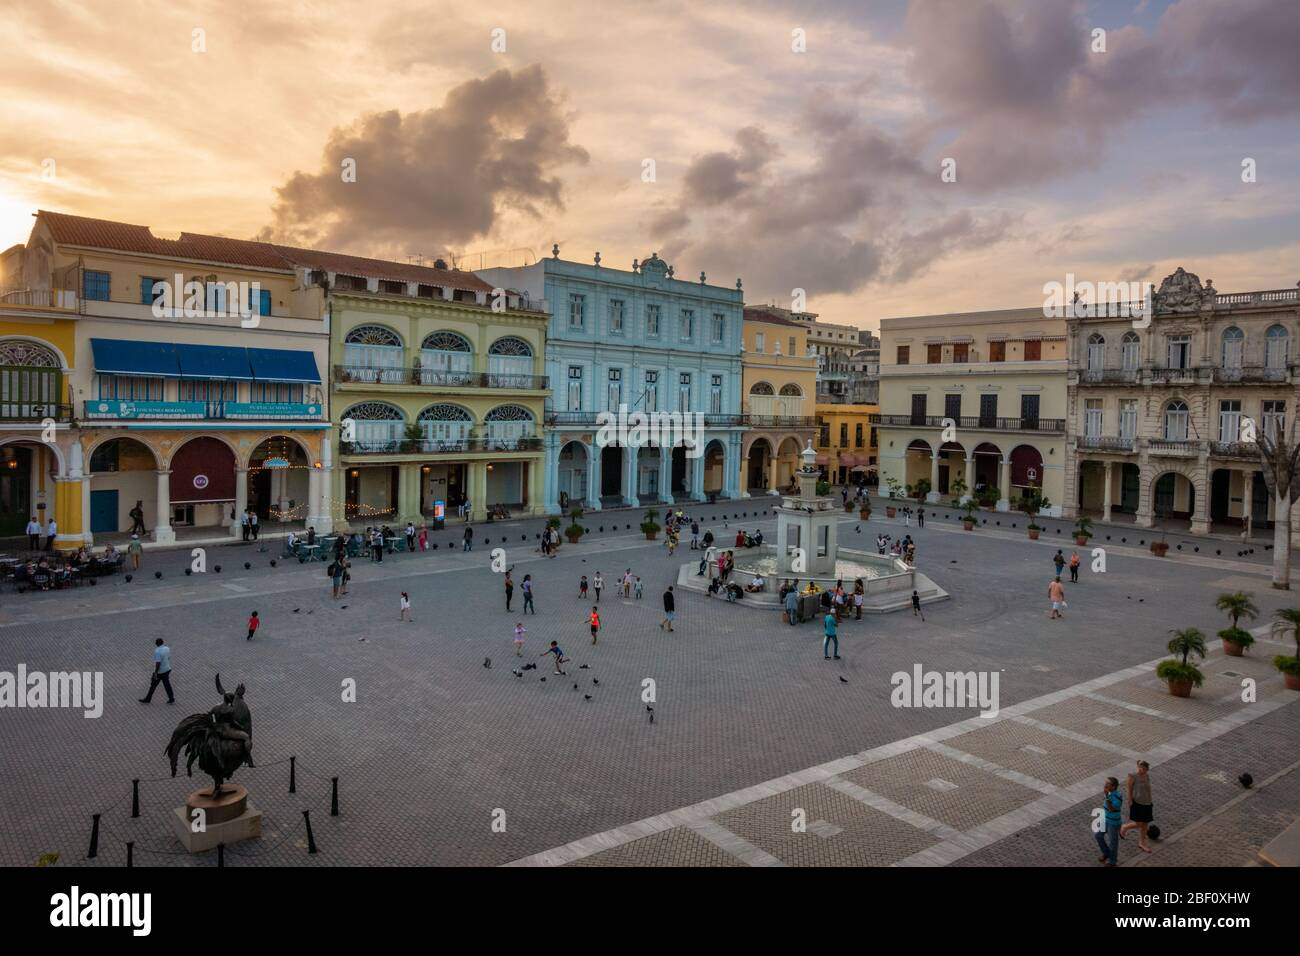 Evening as the sun is setting over Plaza Vieja in Havana old town, Cuba Stock Photo